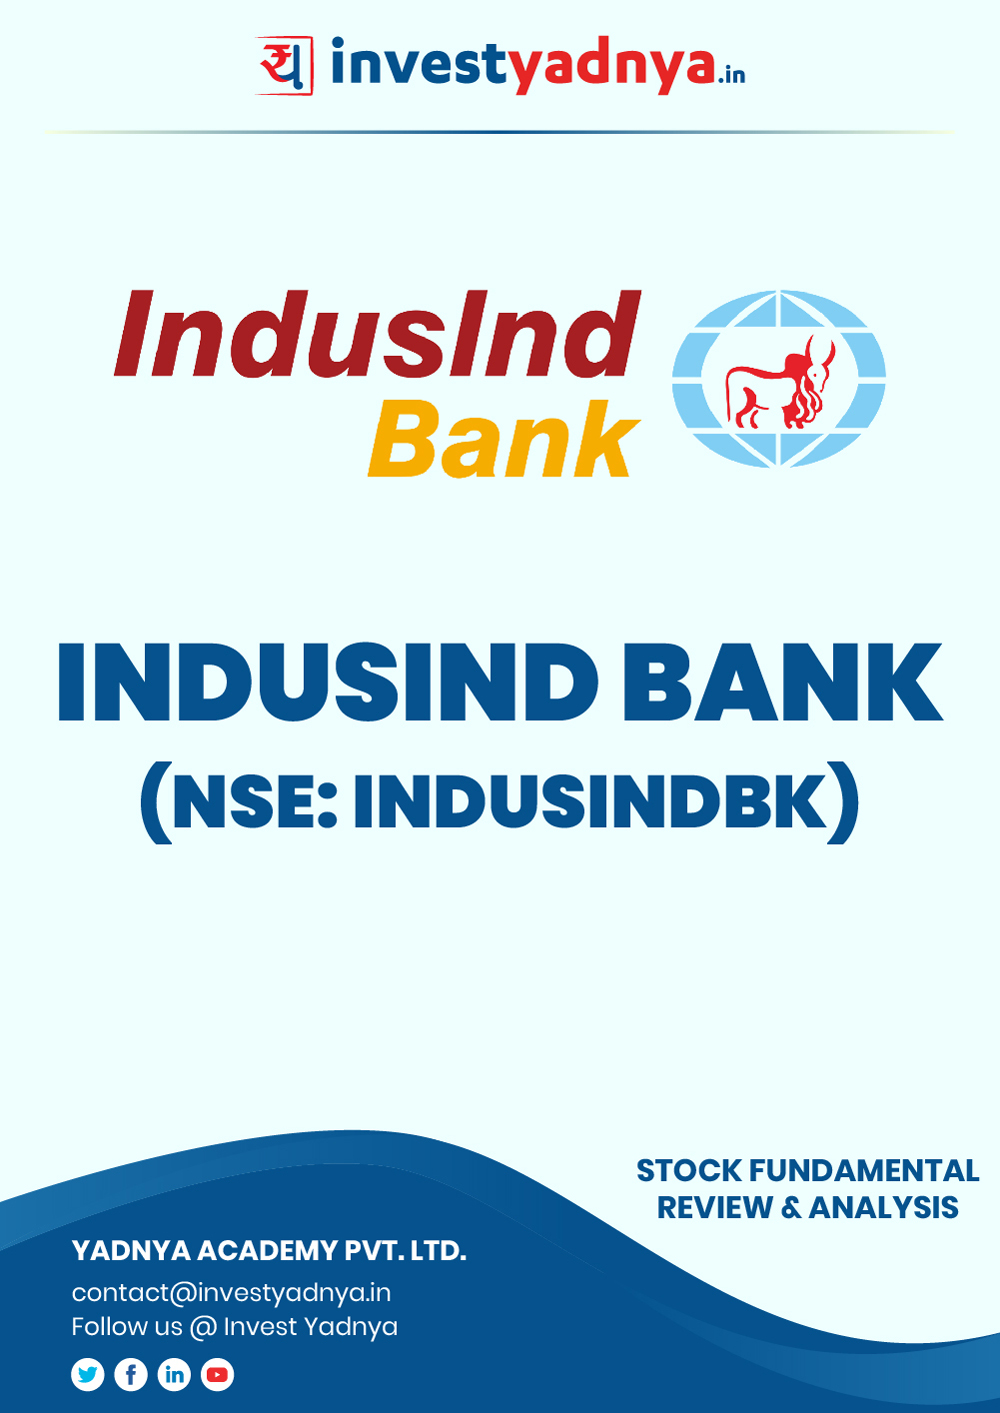 This e-book contains in-depth fundamental analysis of IndusInd Bank Ltd considering both Financial and Equity Research Parameters. It reviews the company, industry, competitors, shareholding pattern, financials, governance and annual performance. ✔ Detailed Research ✔ Quality Reports